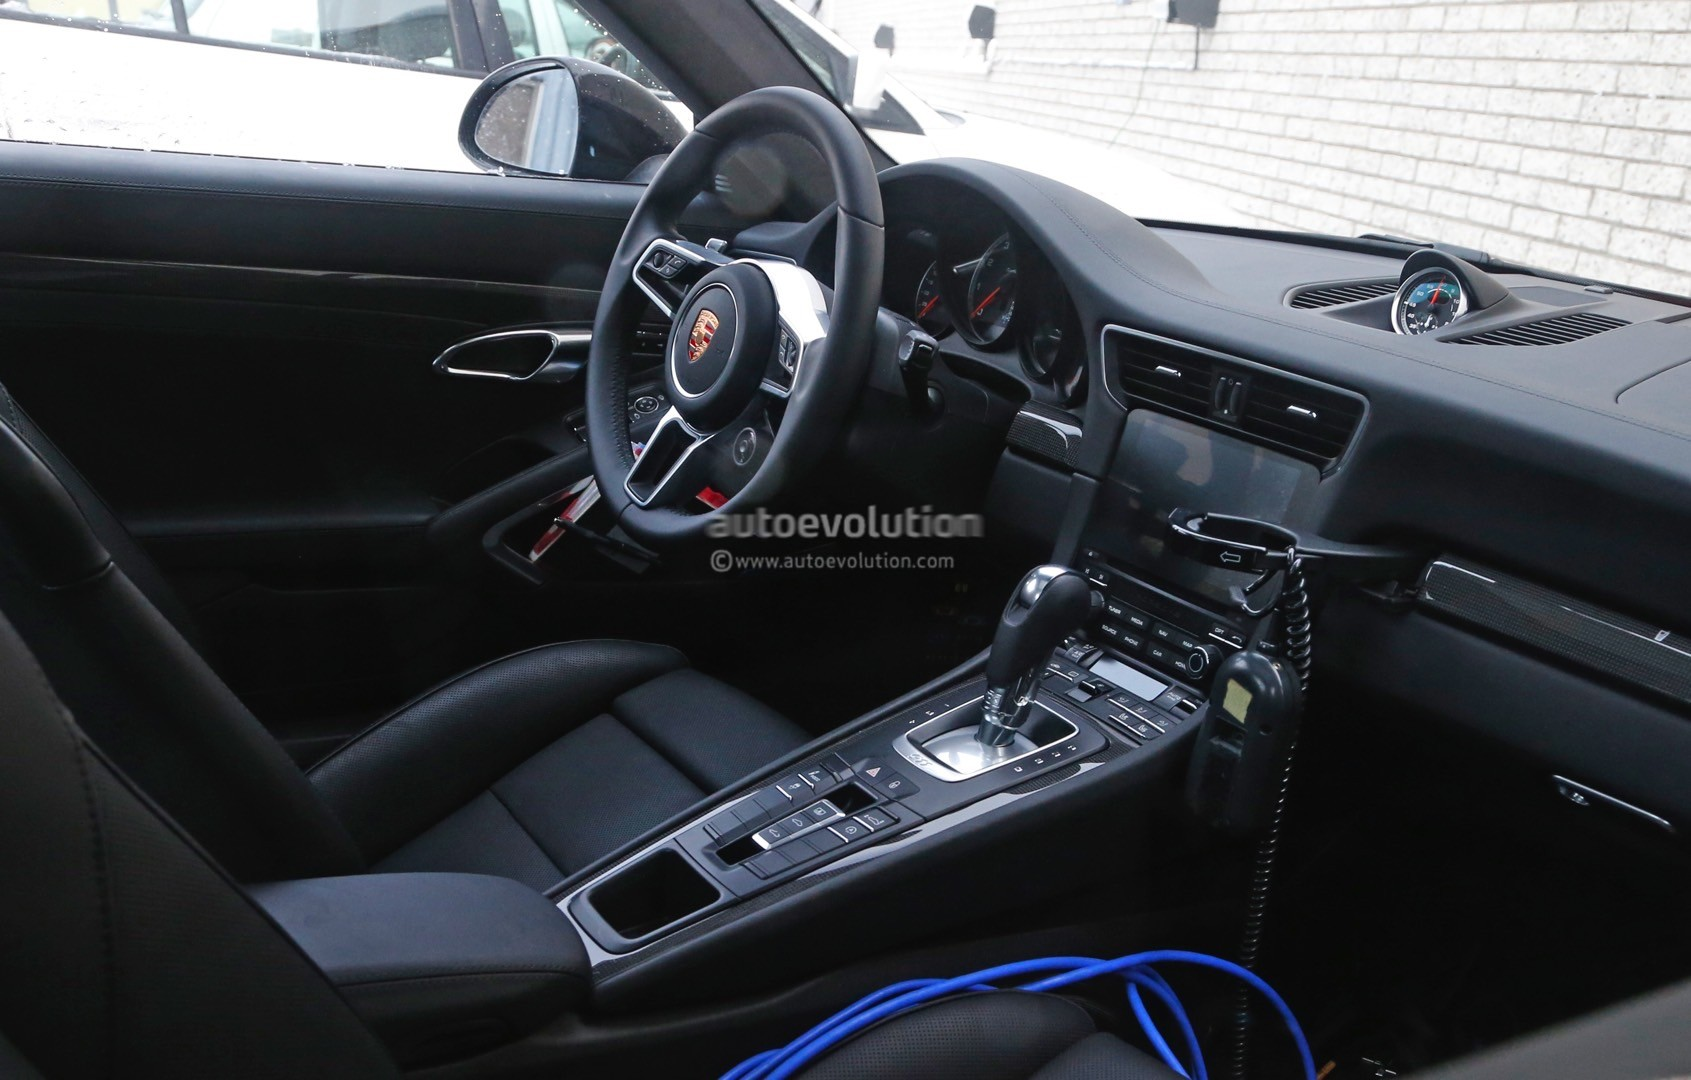 2015 - [Porsche] 911 Restylée [991] - Page 8 2015-porsche-911-turbo-facelift-shows-a-new-steering-wheel-in-latest-spyshots-photo-gallery_1